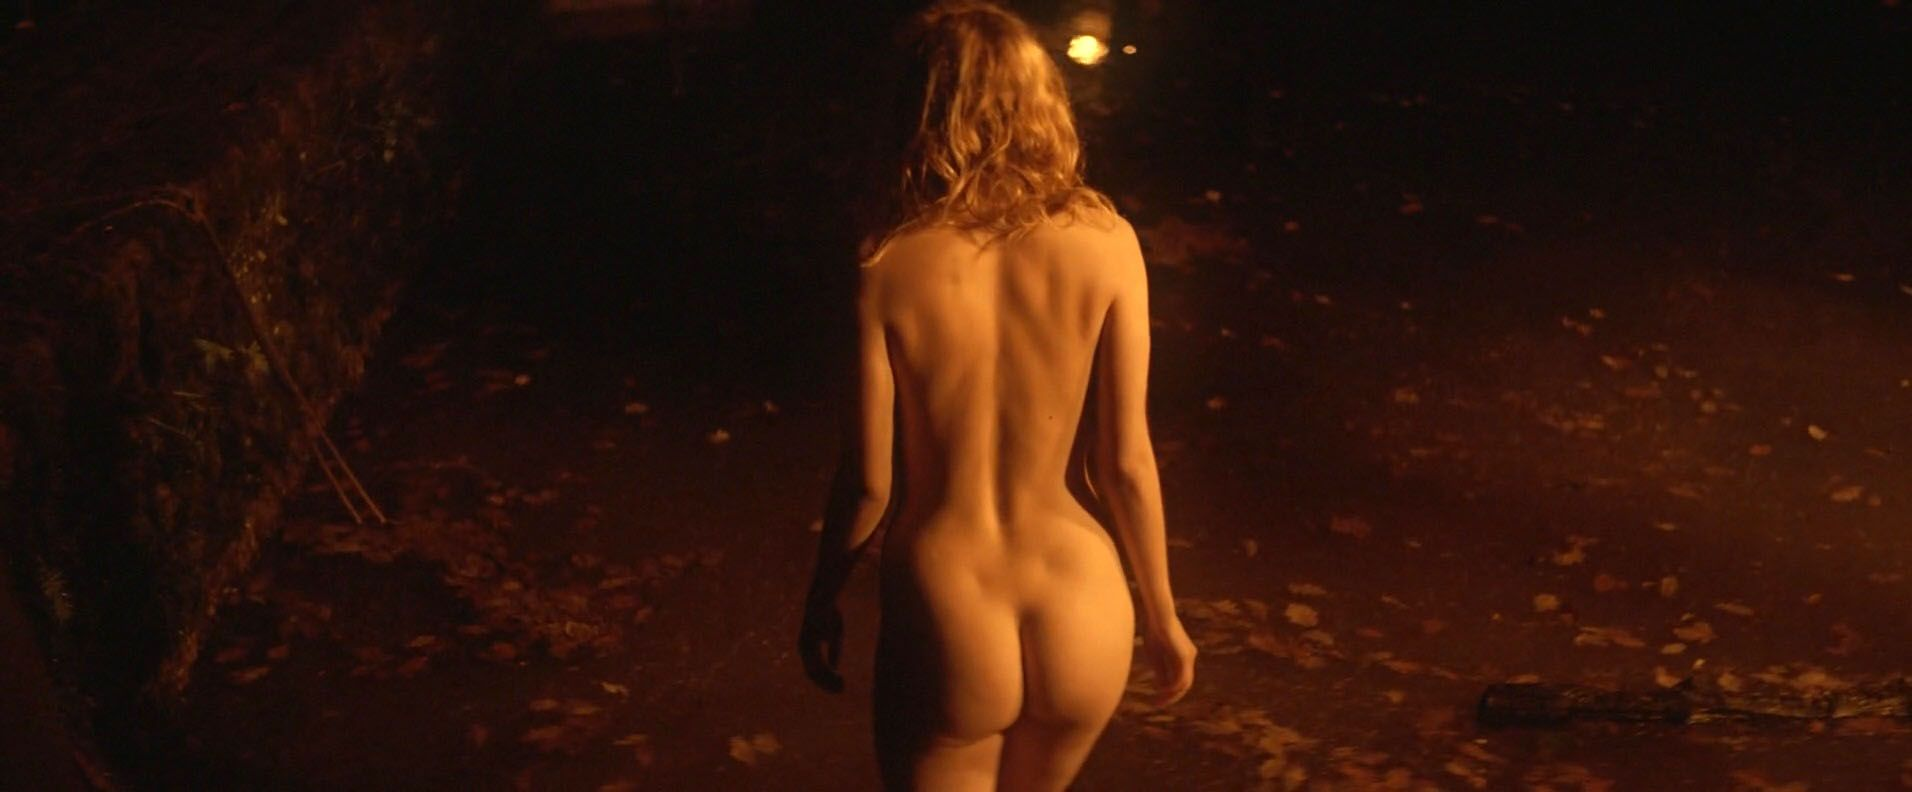 Hannah-Murray-Elinor-Crawley-Nude-4